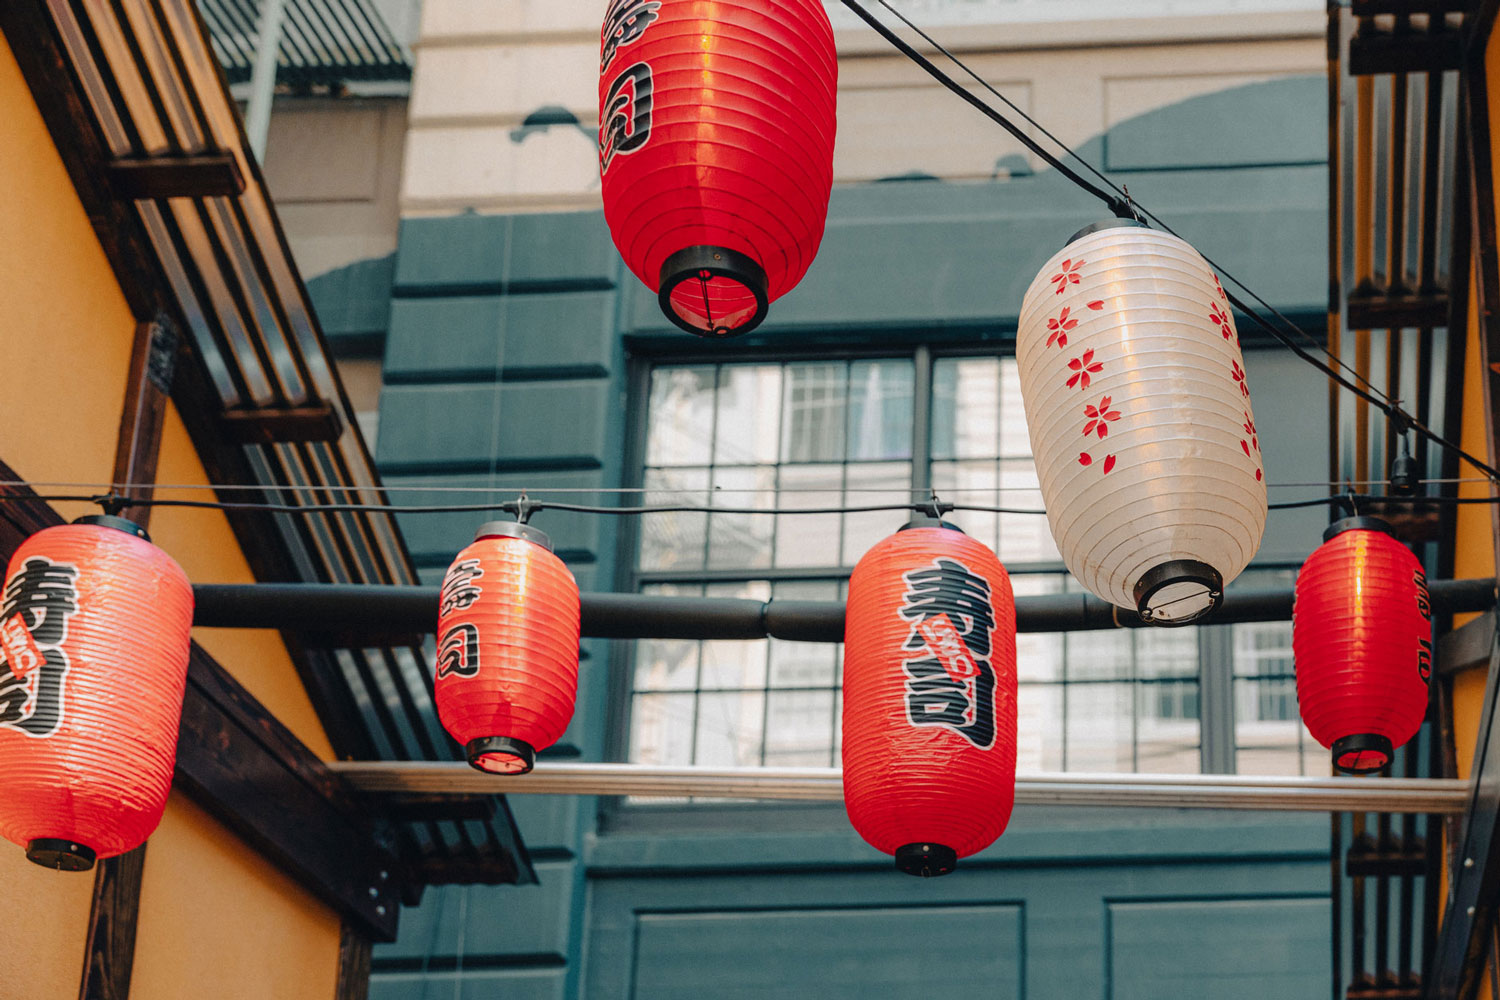 Lanterns hanging about outside.